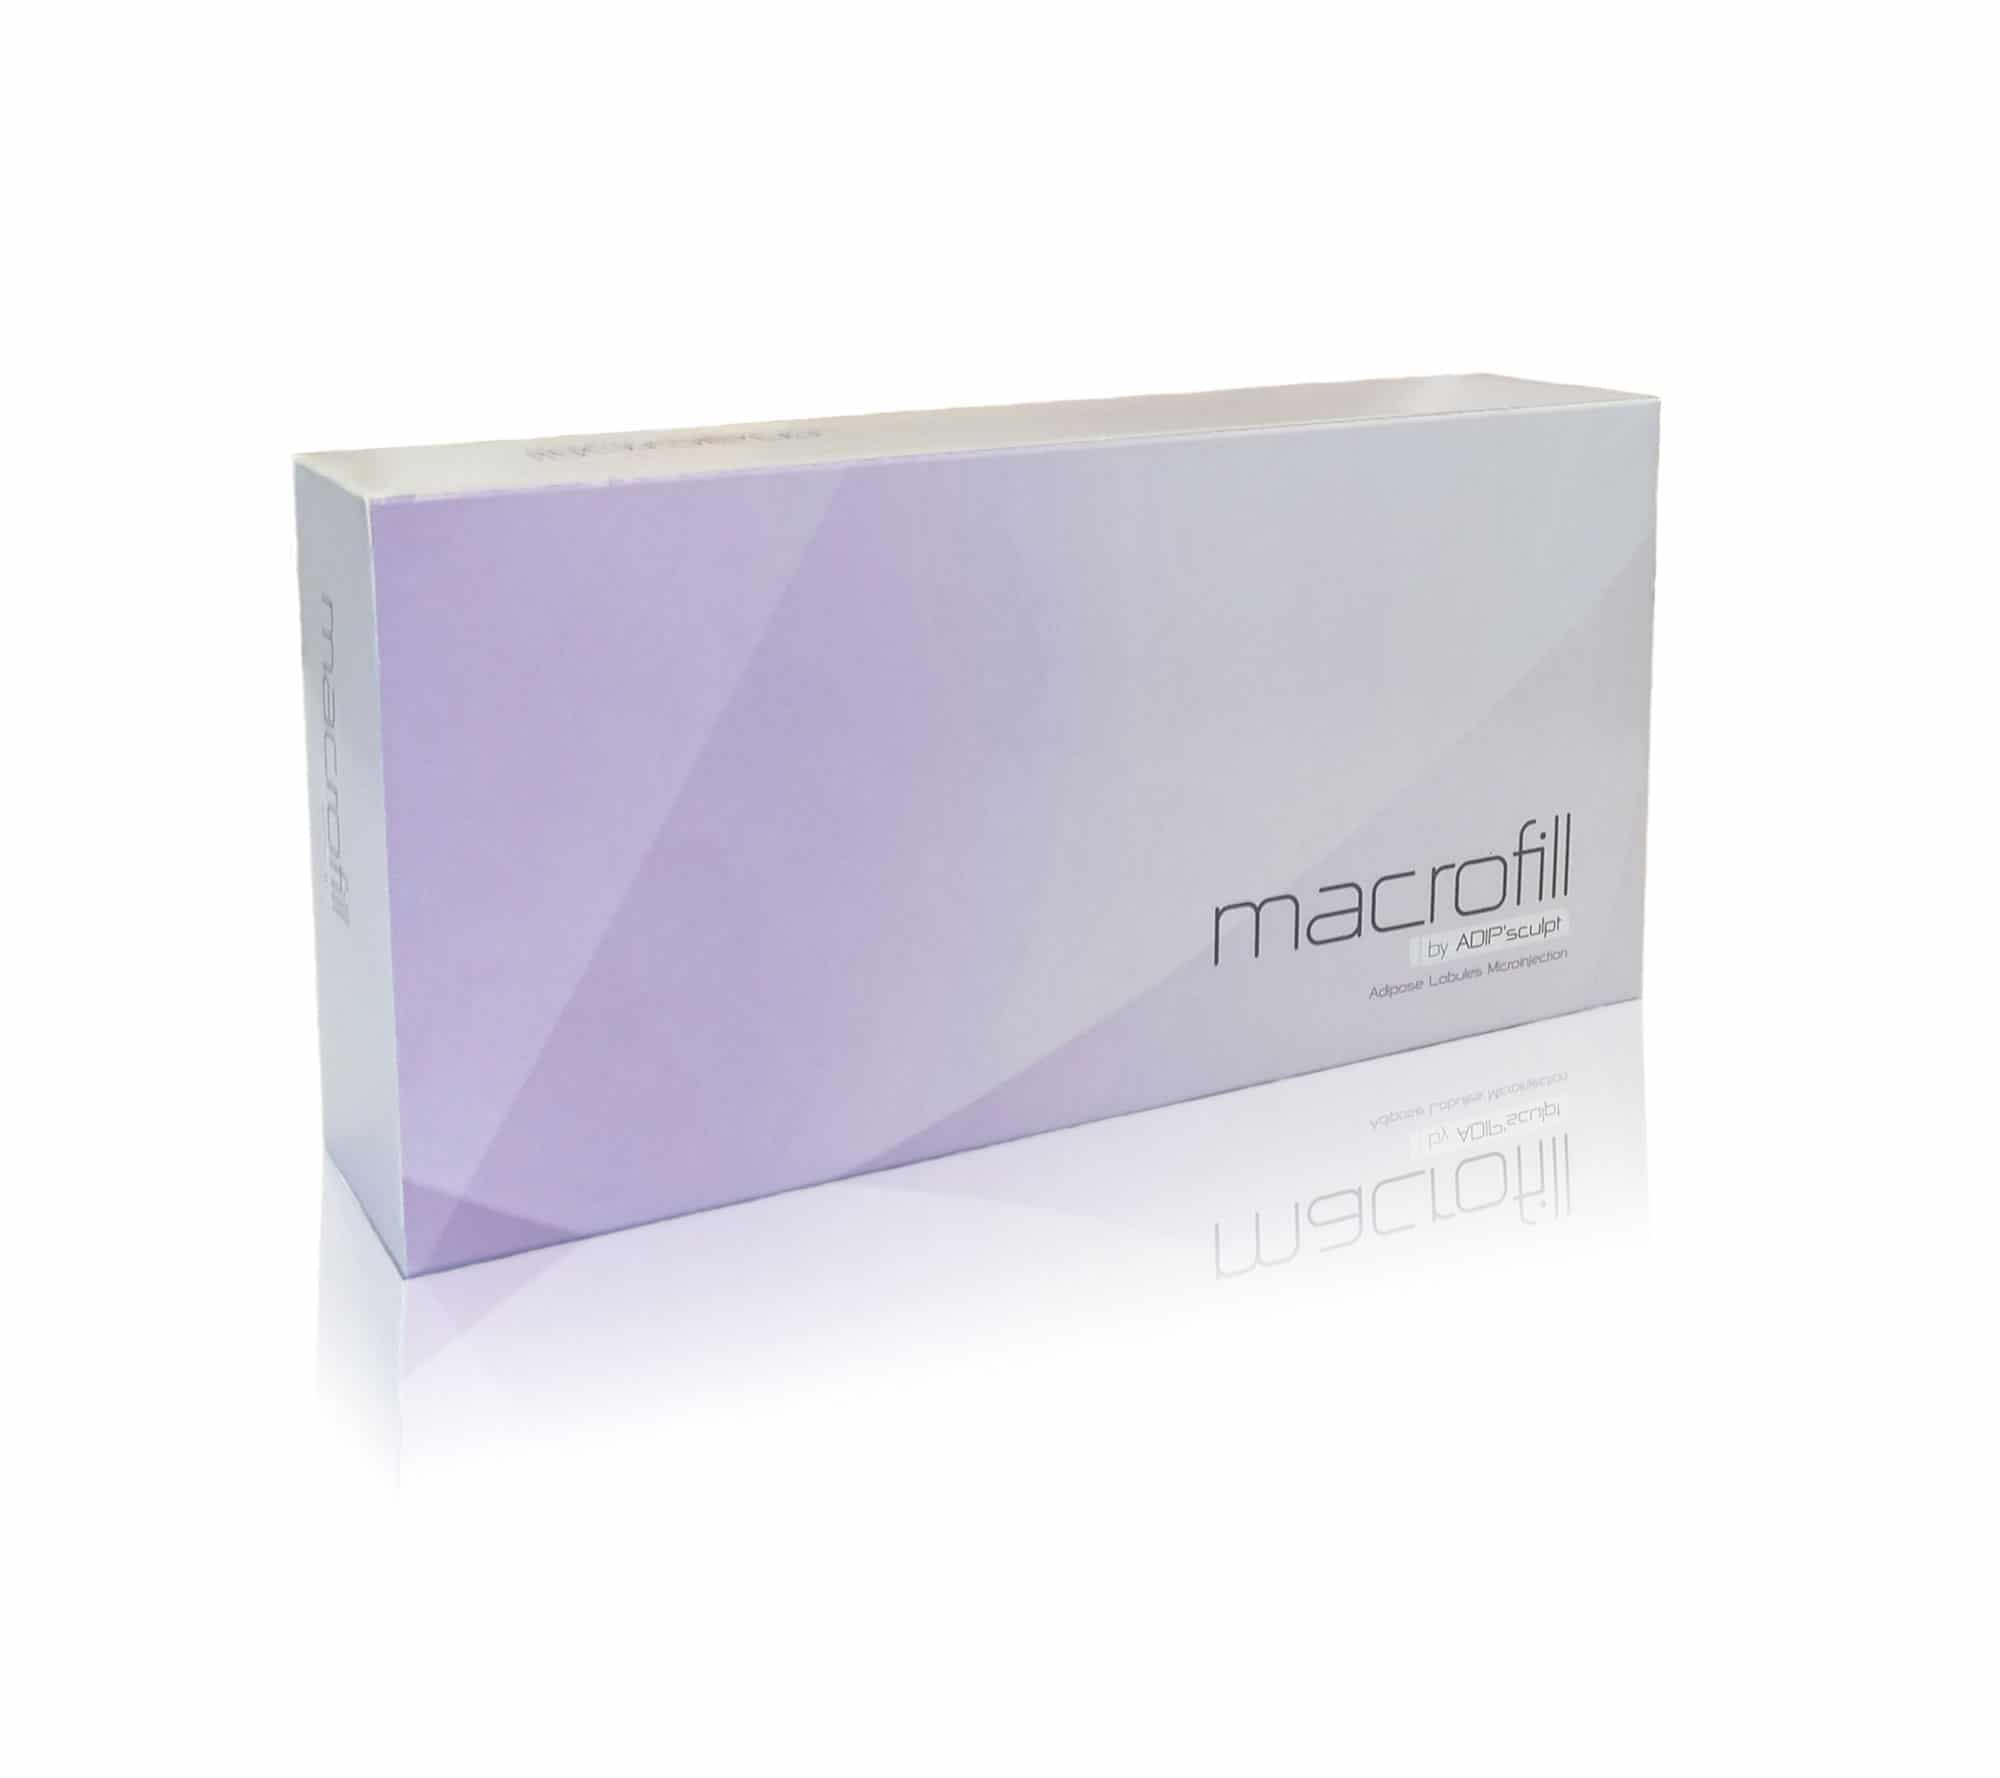 macrofill lipofilling lipomodeling fat grafting adipsculpt leader efficient